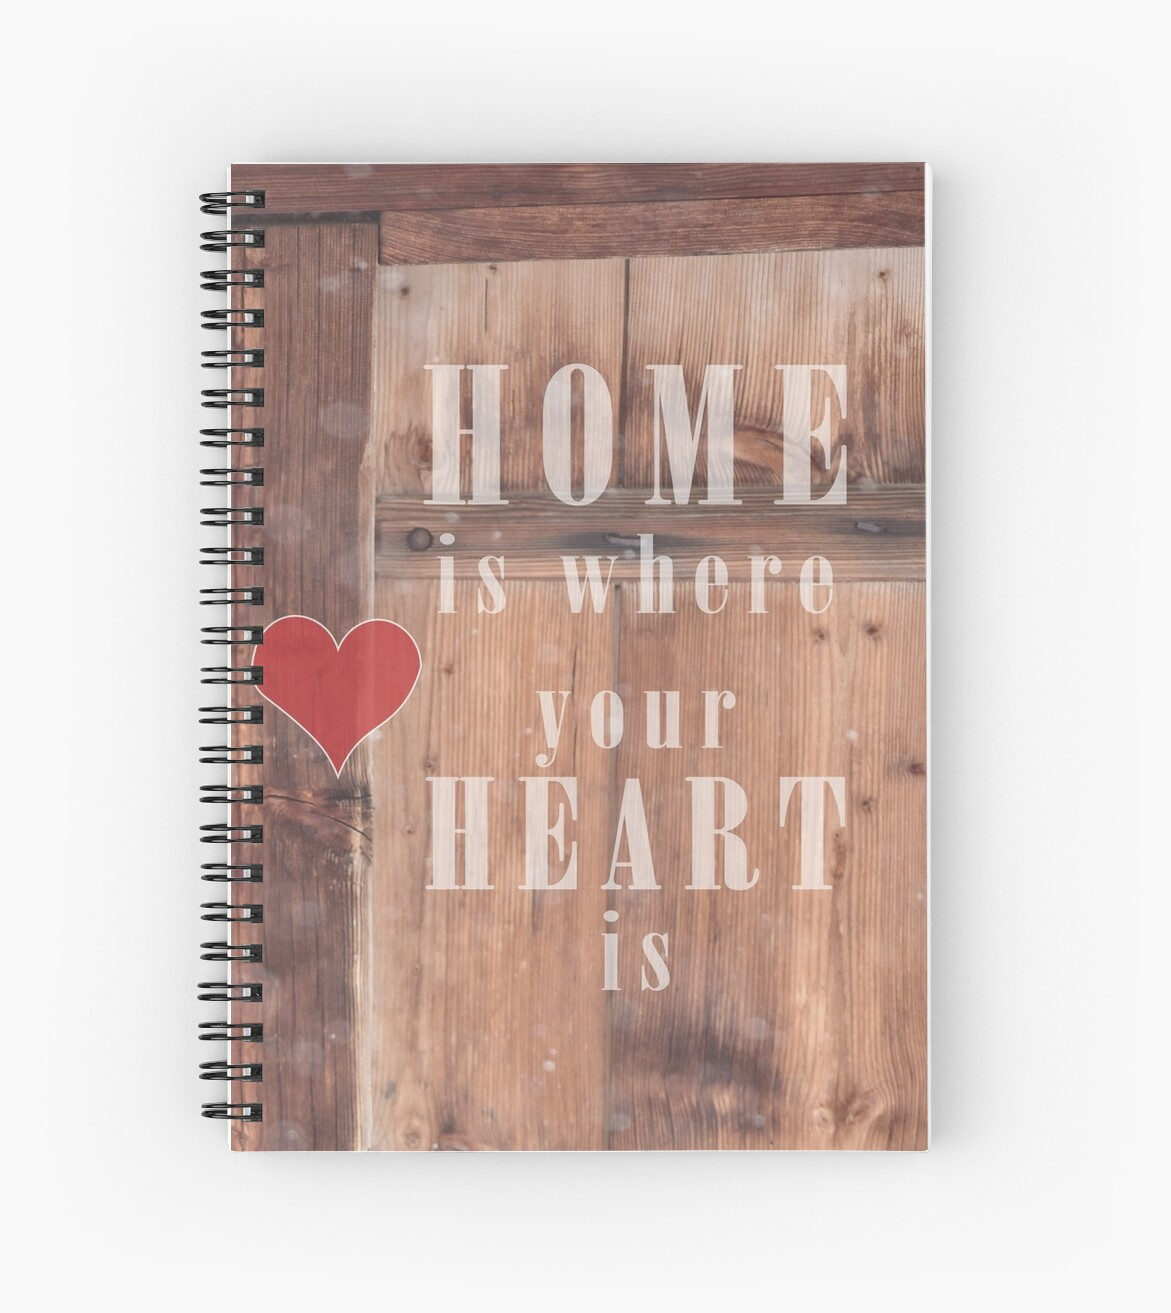 Home is where your heart is by Fanny88Sheepy86